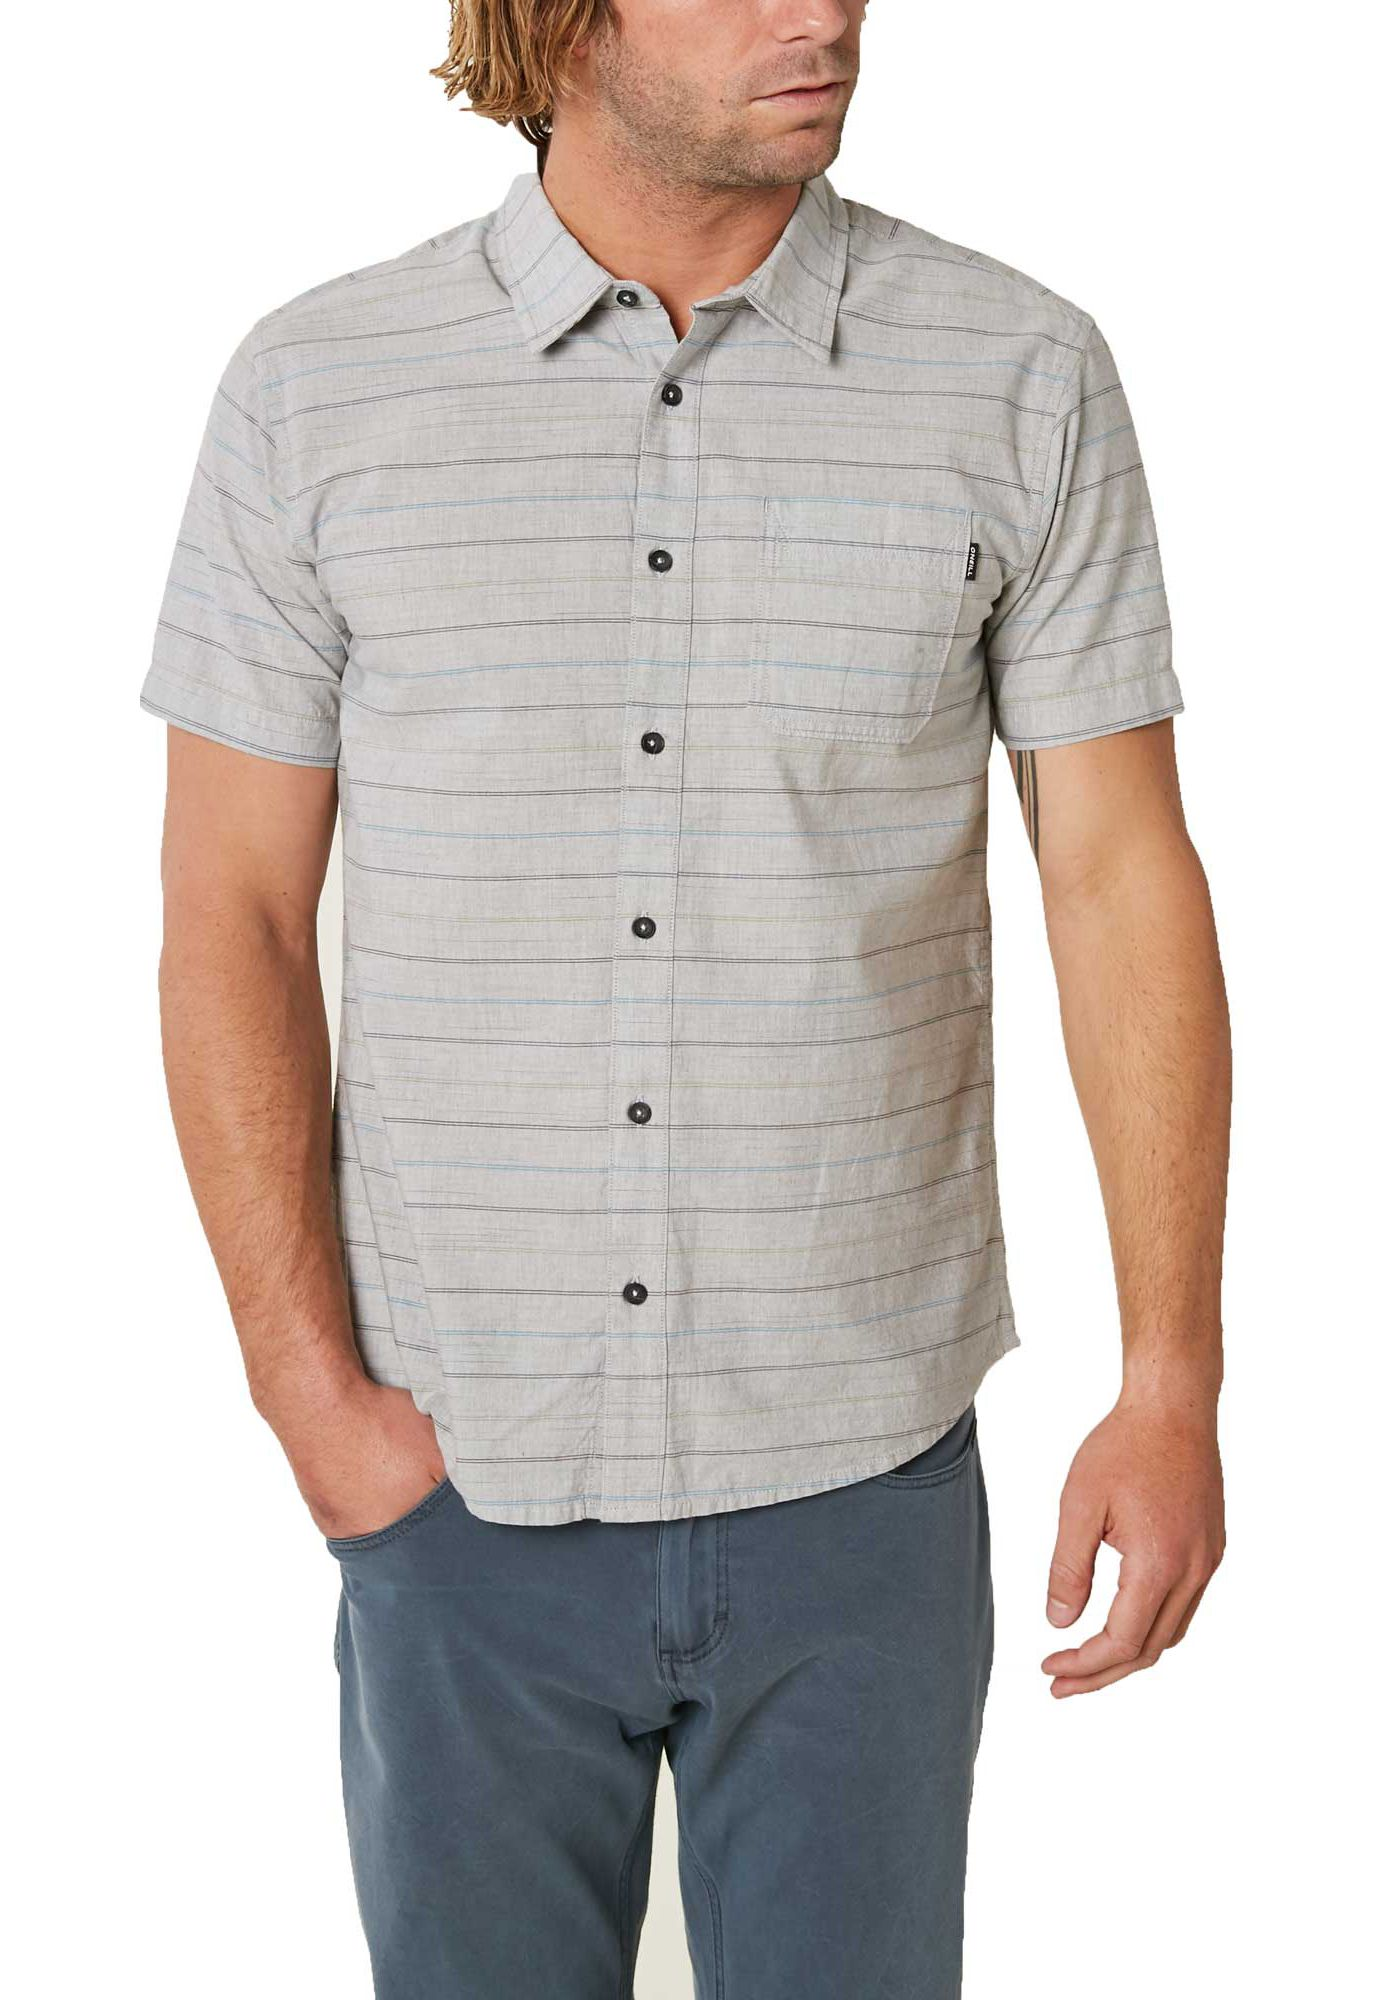 O'Neill Men's Brewster Stripe Woven Button Down Shirt